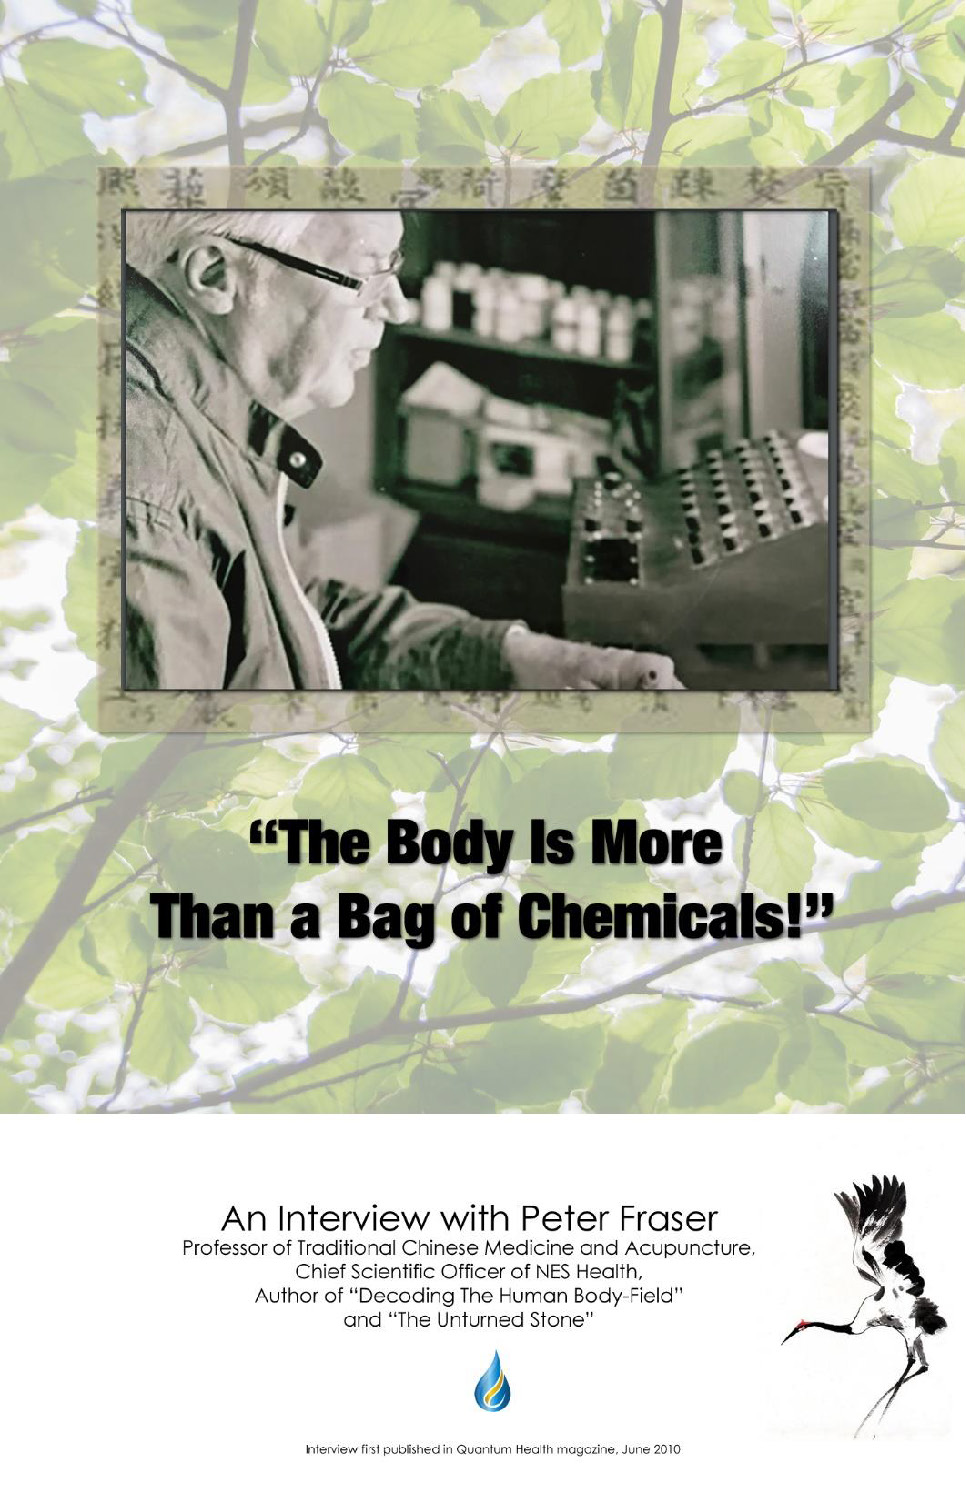 The body is more than a bag of chemicals - a rare interview with NES co-founder Peter Fraser.